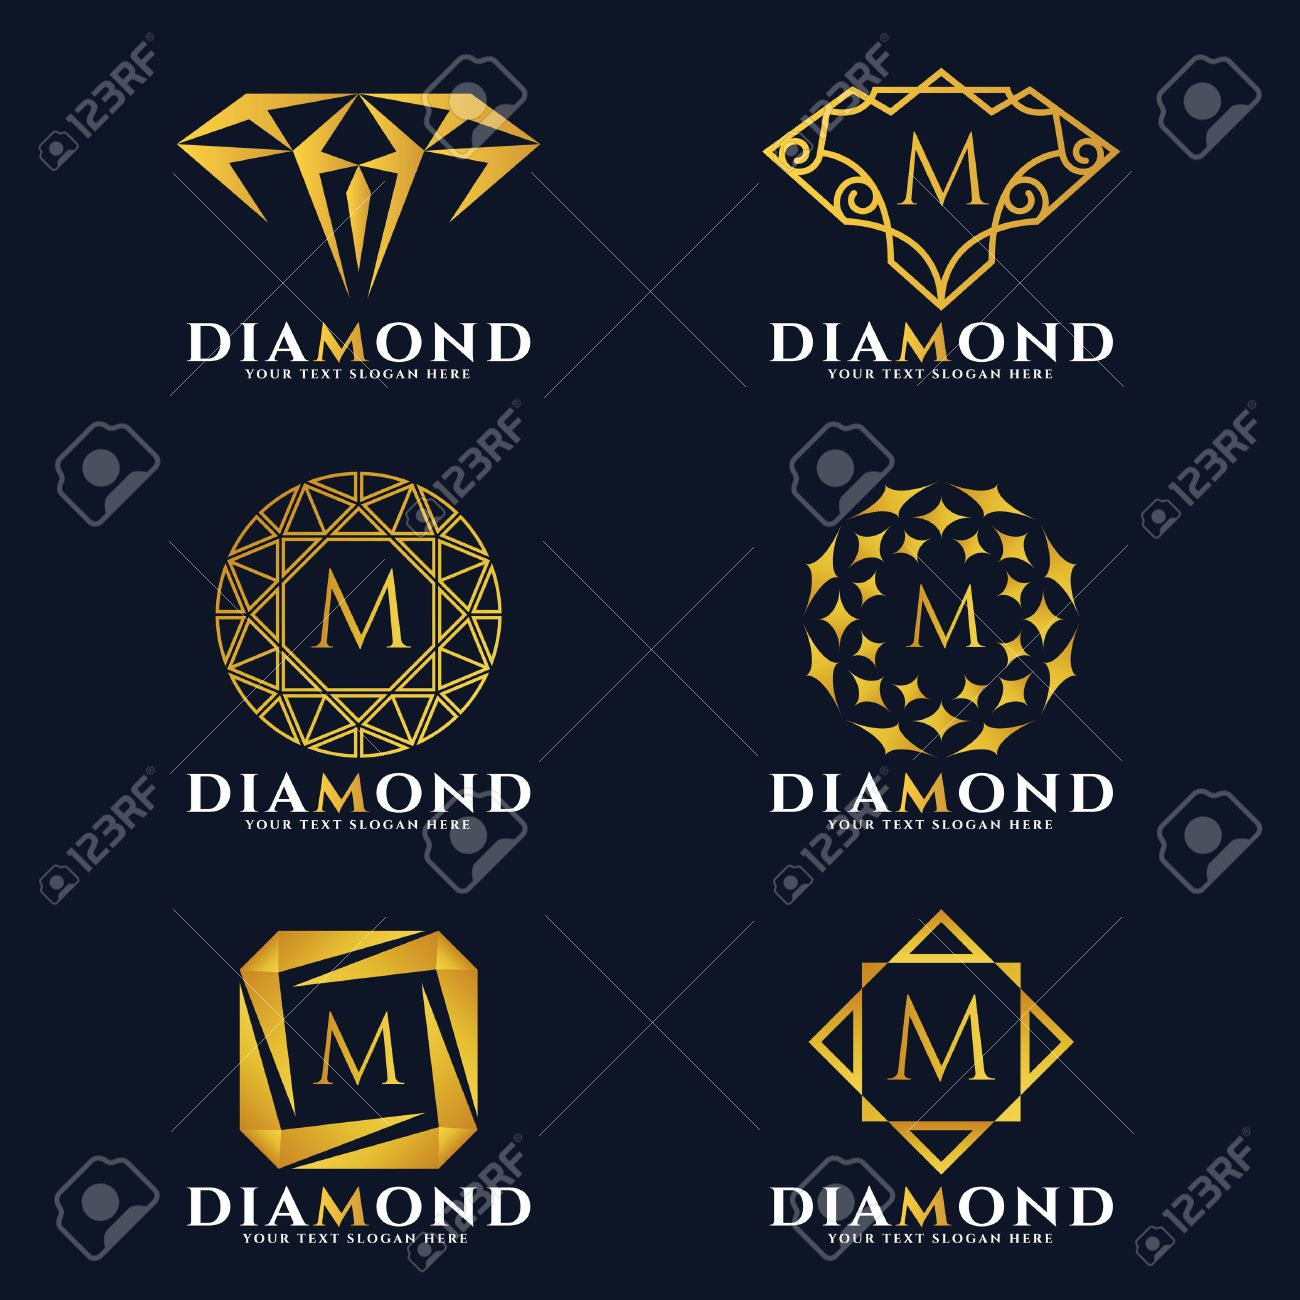 vector free logo image template royalty diamond